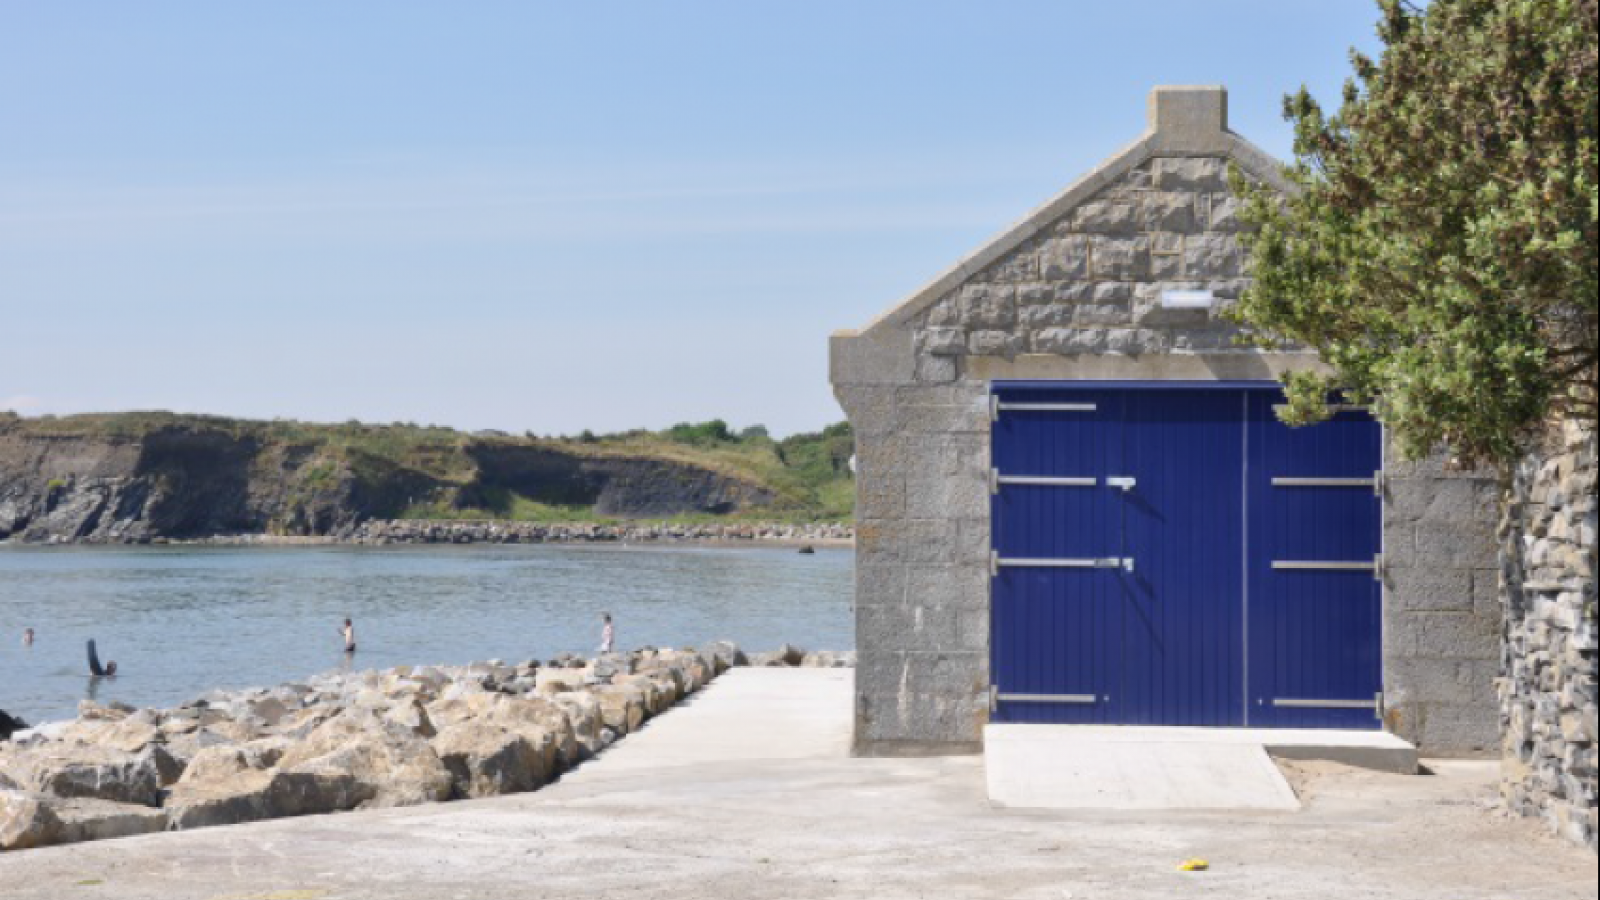 Loughshinny Boathouse Artists' Studio